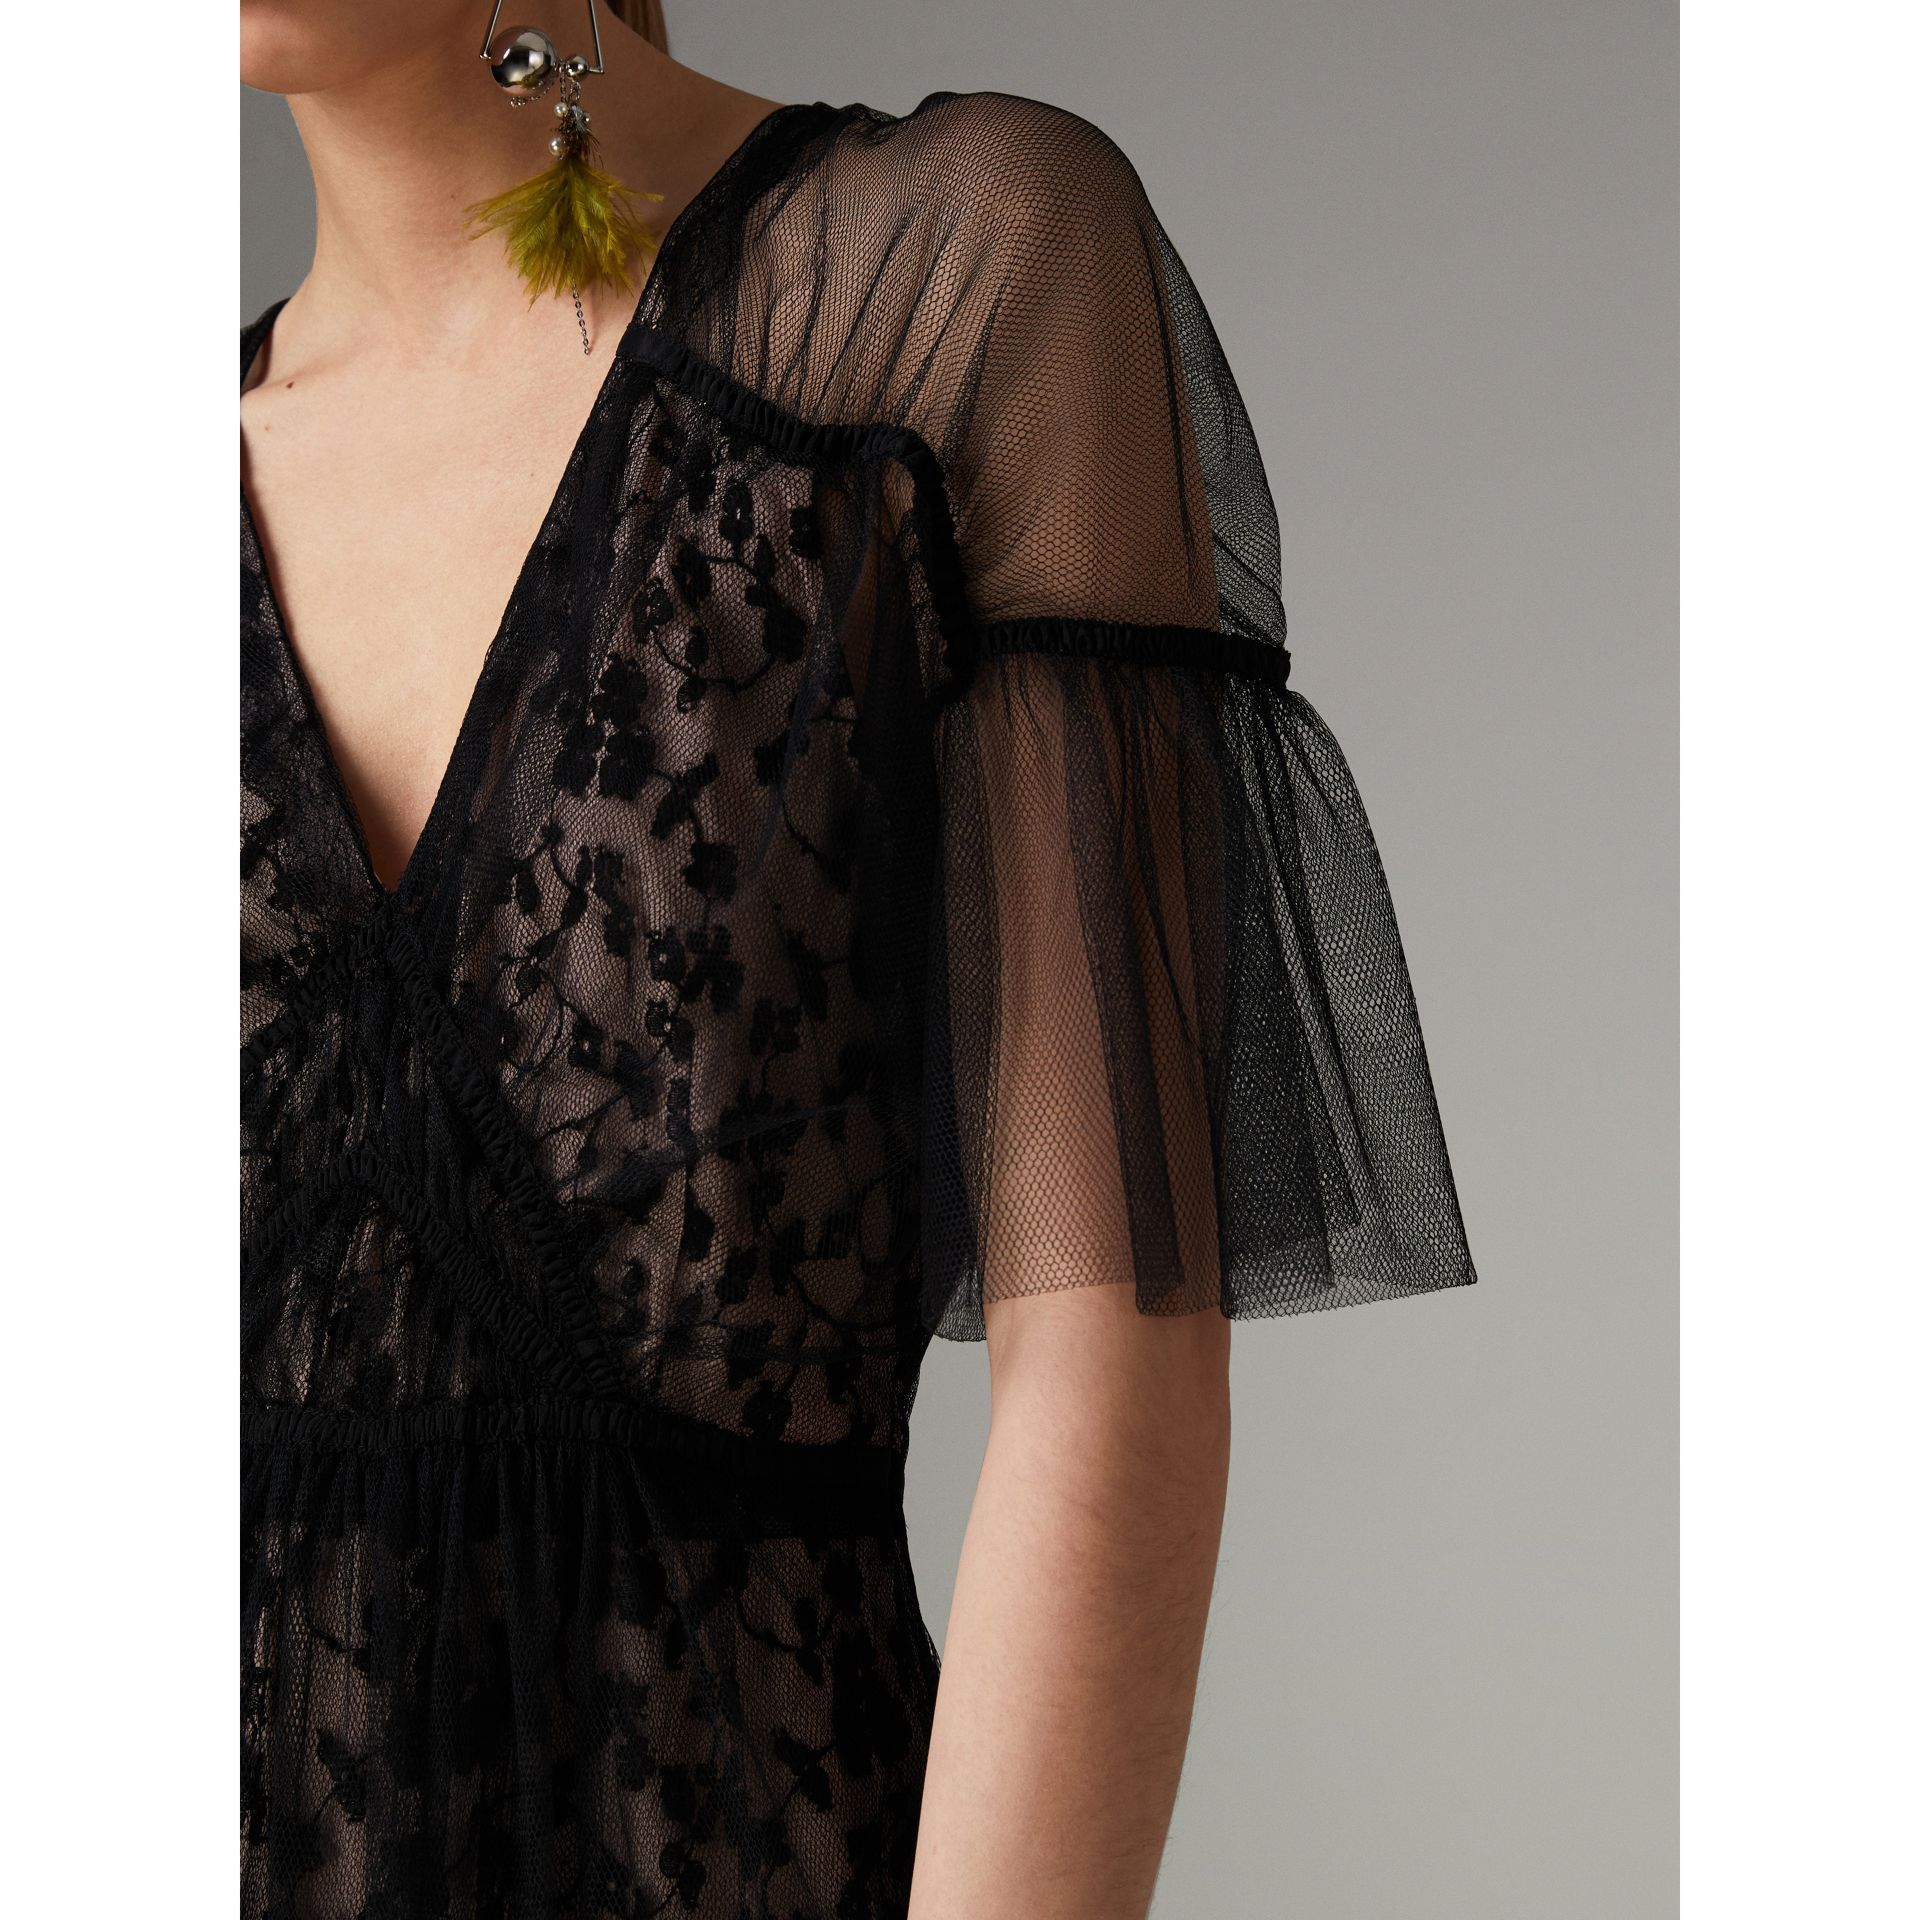 Ruffled Hem Embroidered Tulle Dress in Black - Women | Burberry United States - gallery image 1